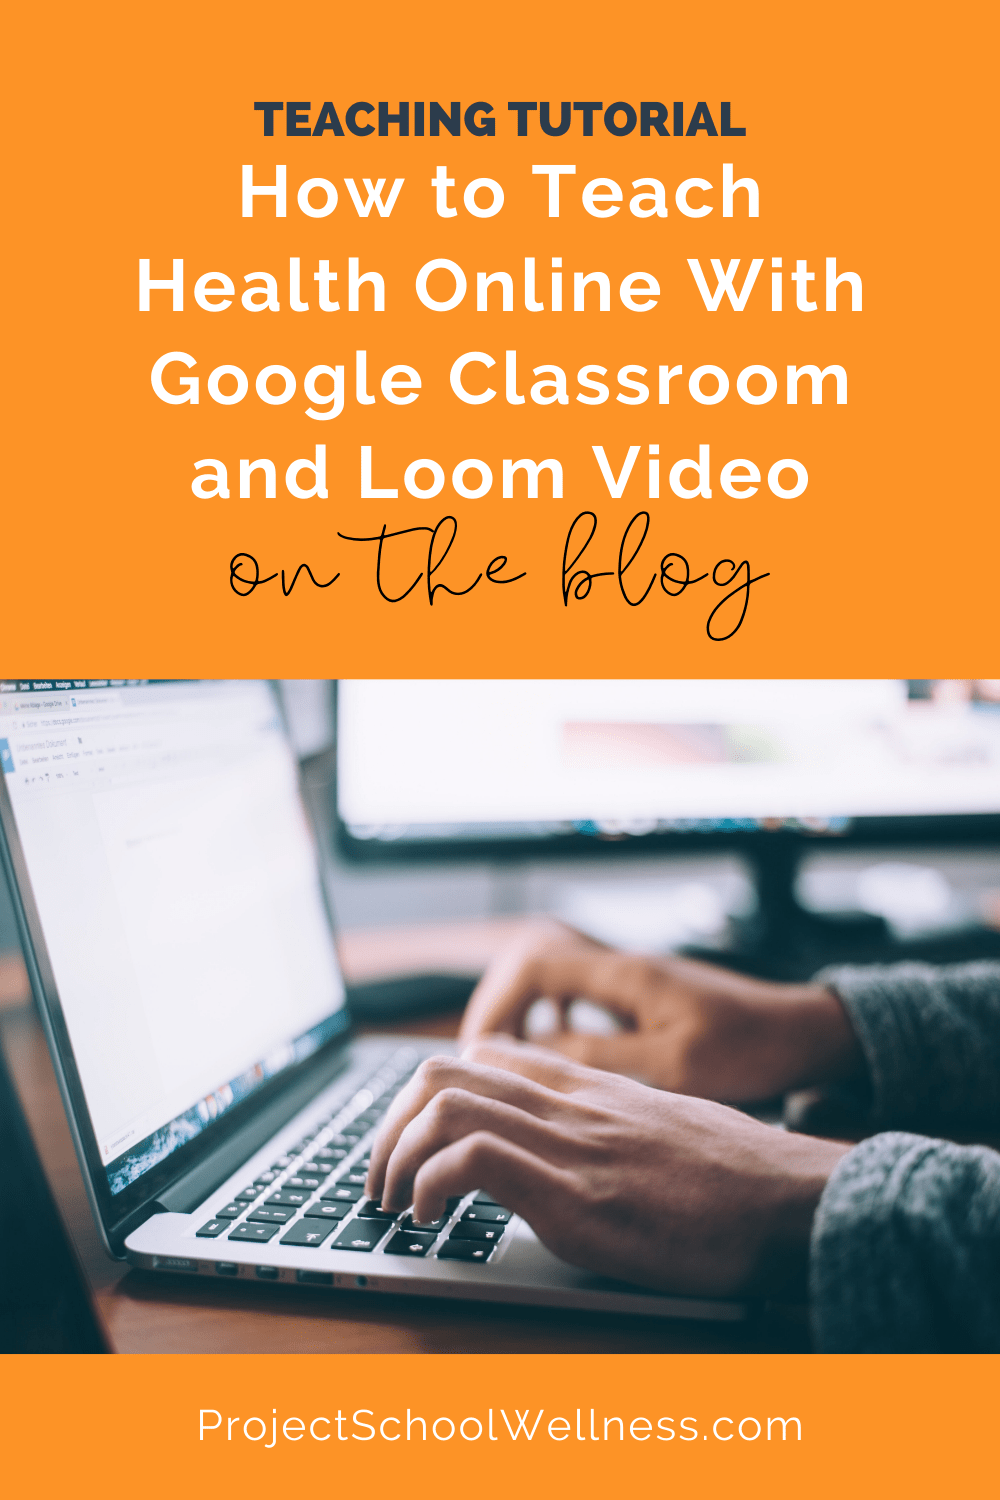 Learn how to teach health education online with Google Classroom and Loom Video with this free digital learning teaching tutorial. This health education tutorial will help middle school and high school teachers launch their digital classroom and digital learning experience. This health teacher blog post shares digital classroom ideas, digital classroom management, digital classroom design, digital learning activities for middle school Google Classroom and high school Google Classroom.